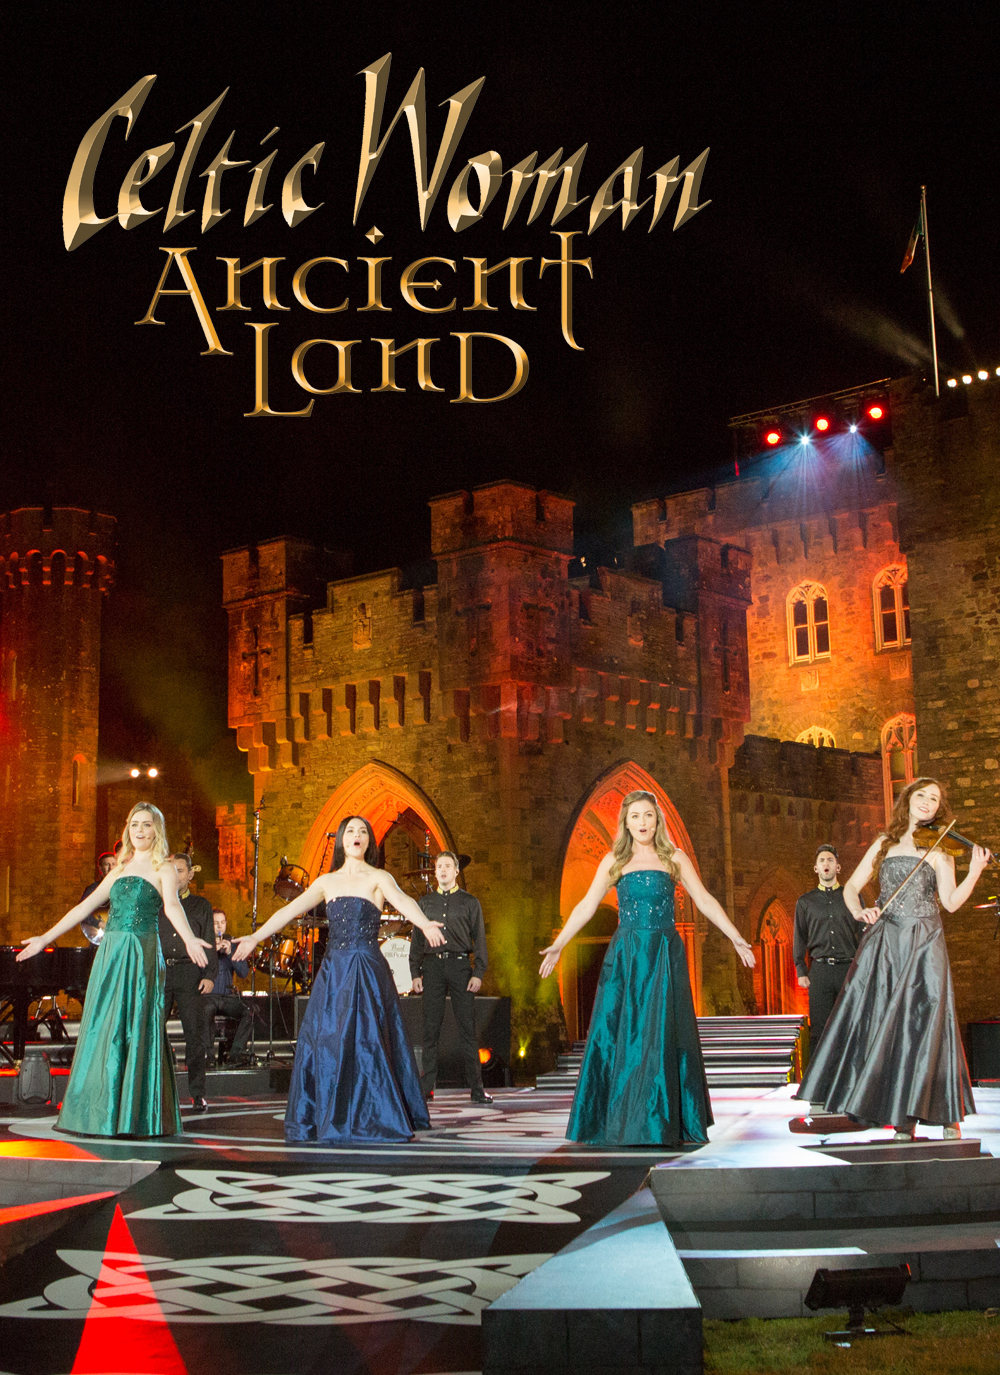 Celtic Woman Ancient Land Tour